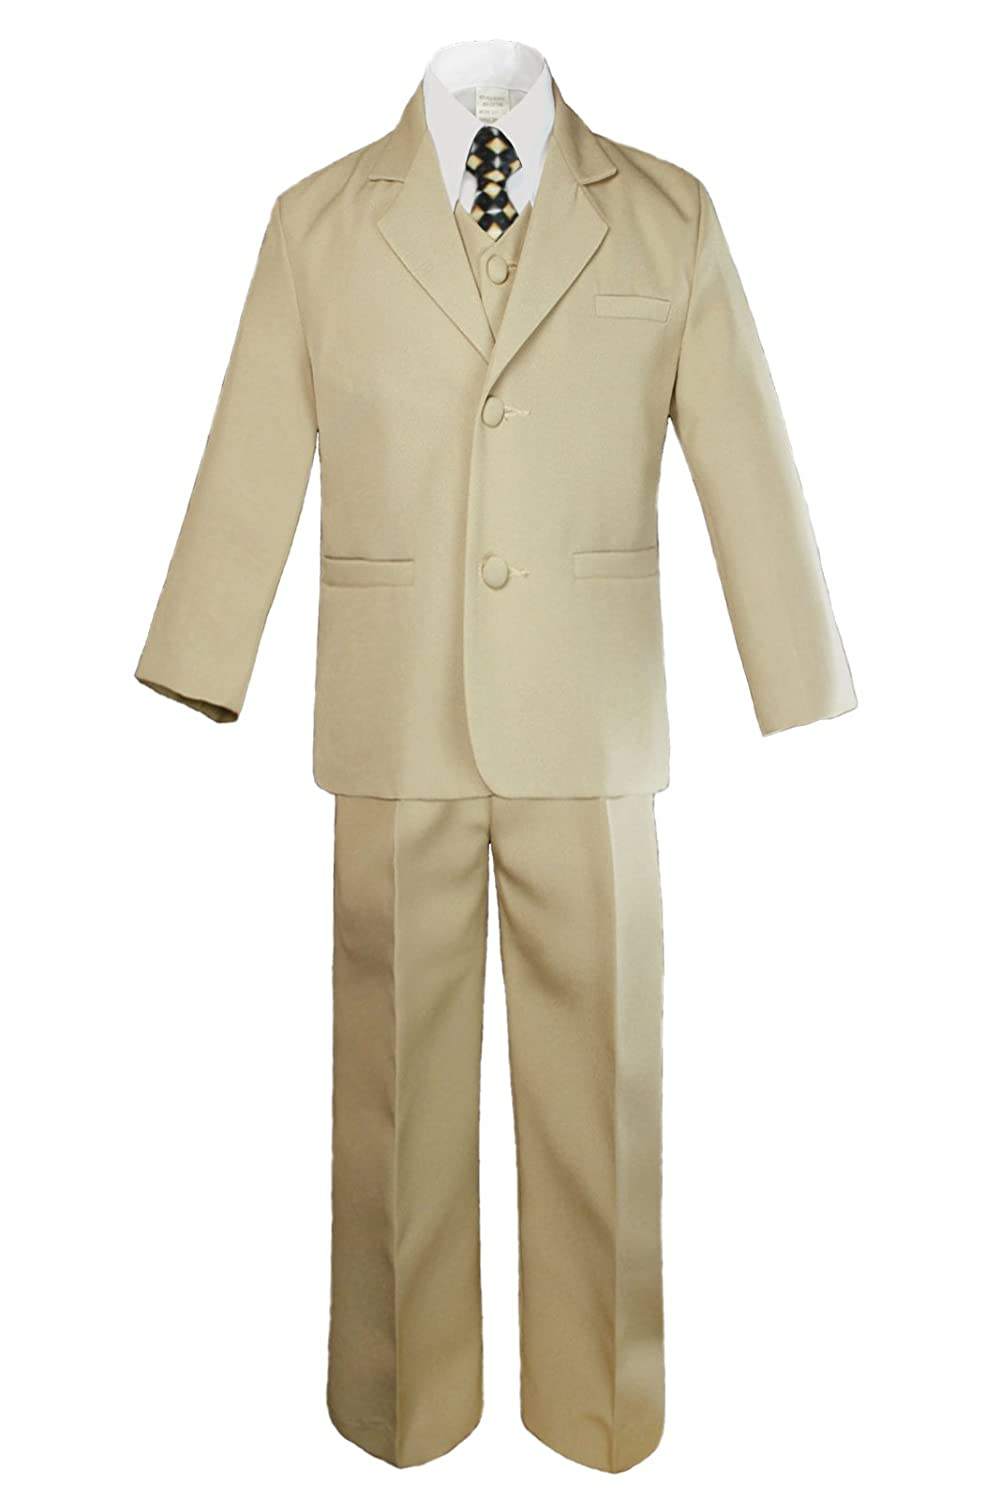 6pc Boys Khaki Tuxedo Suits with Satin Geometric Necktie from Baby to Teen (8)